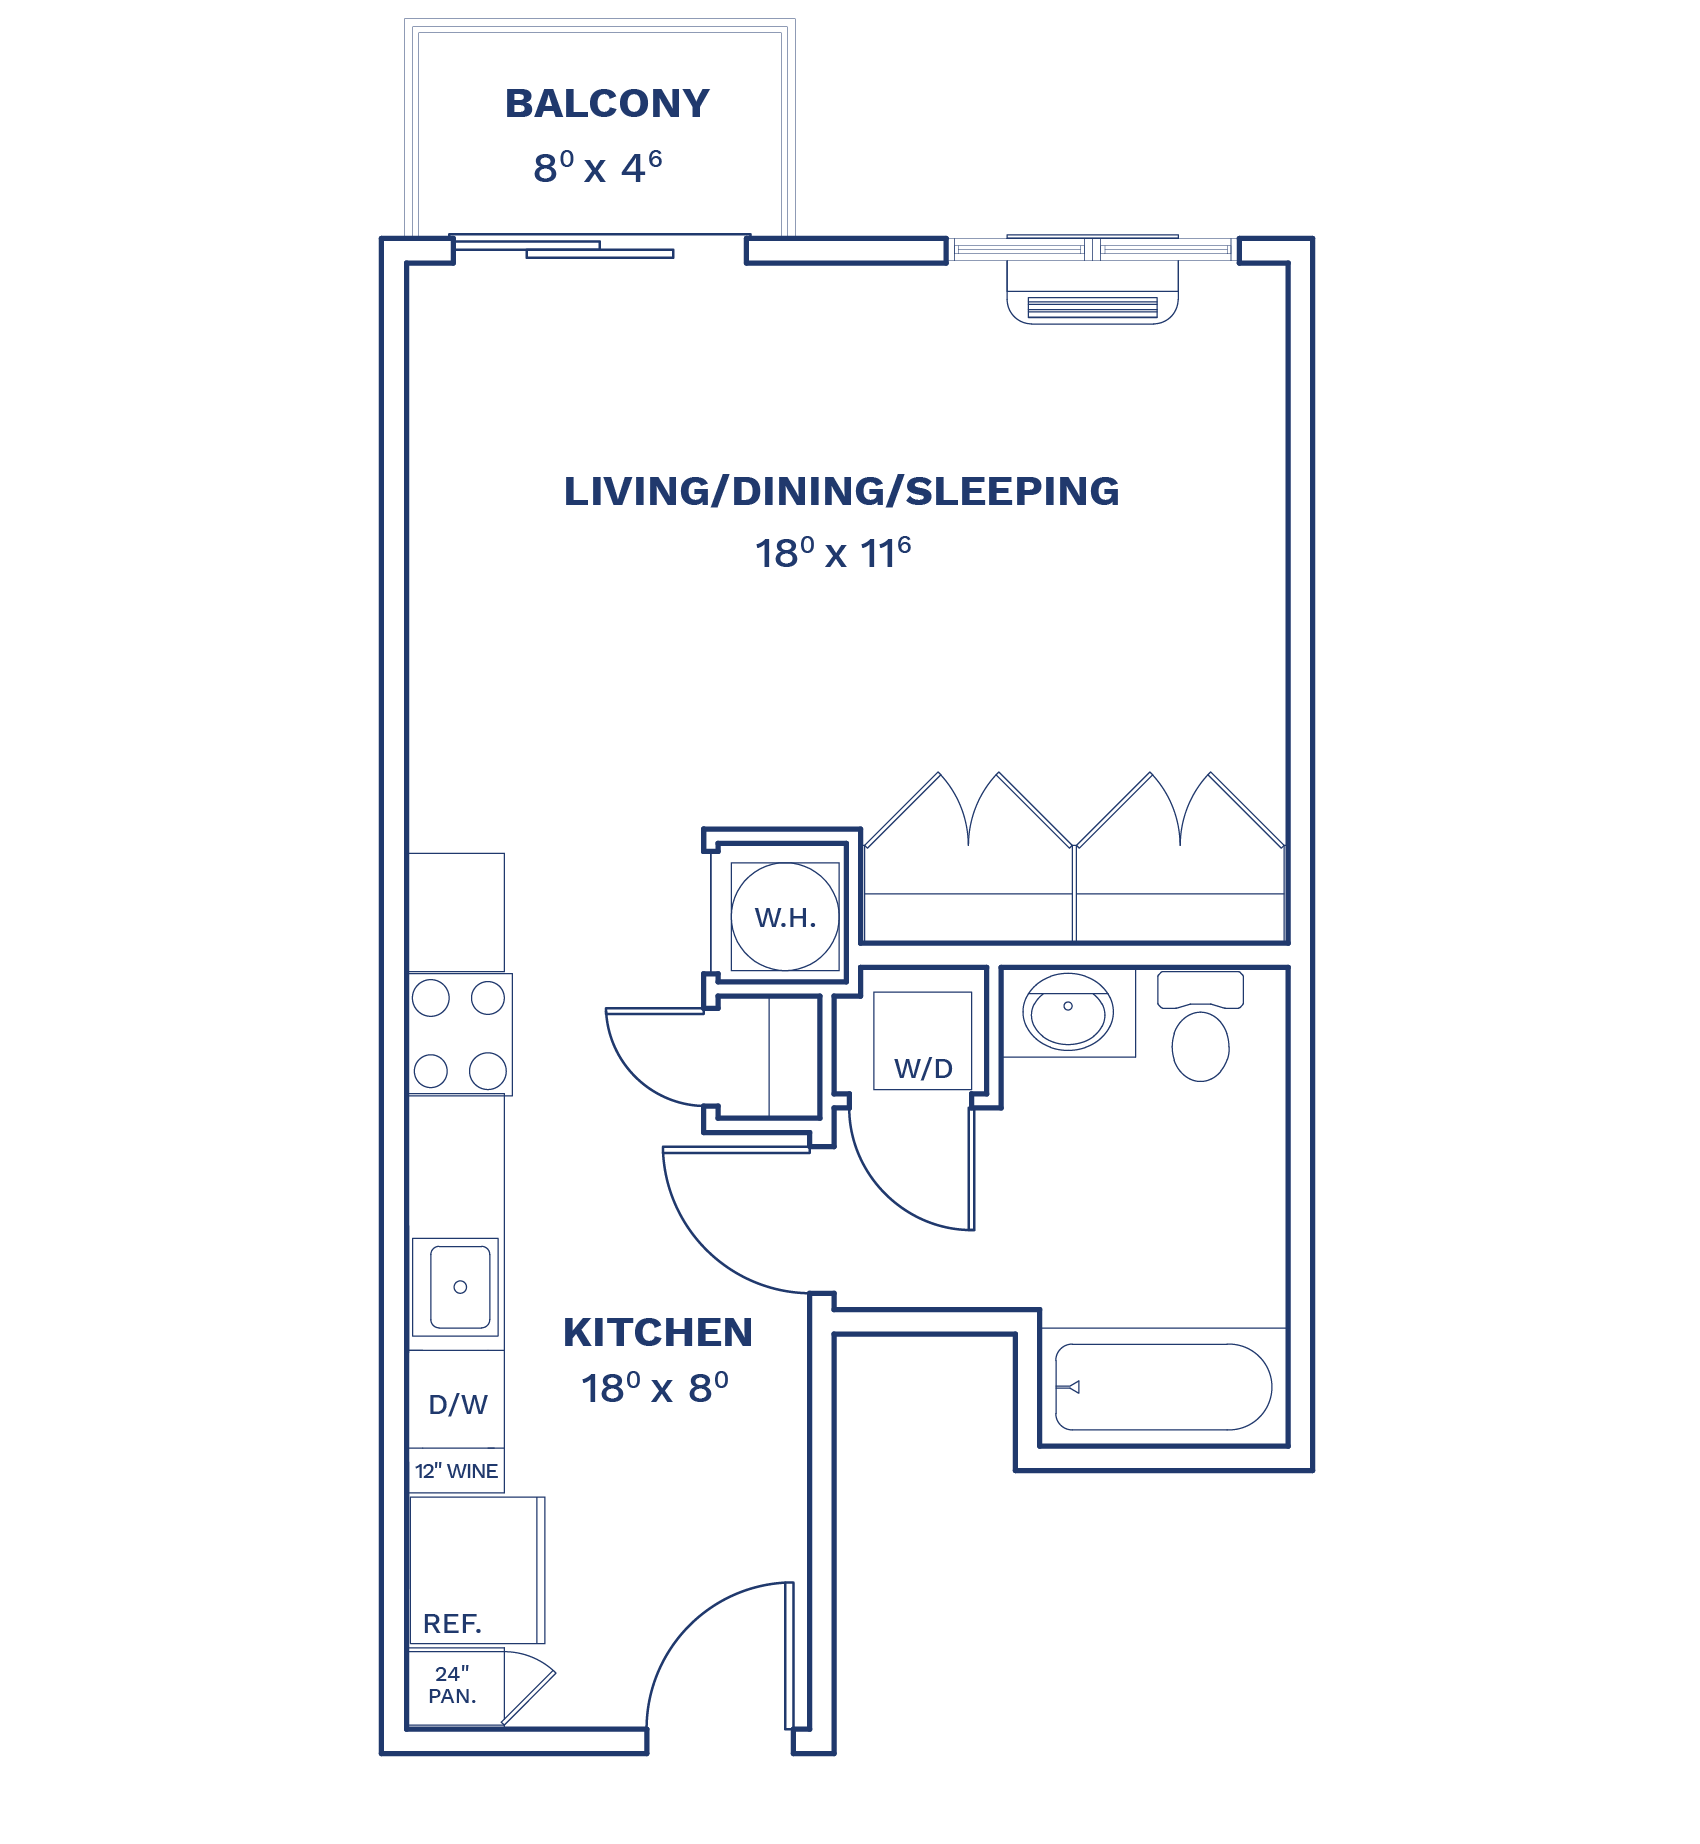 Floorplan of Unit S2